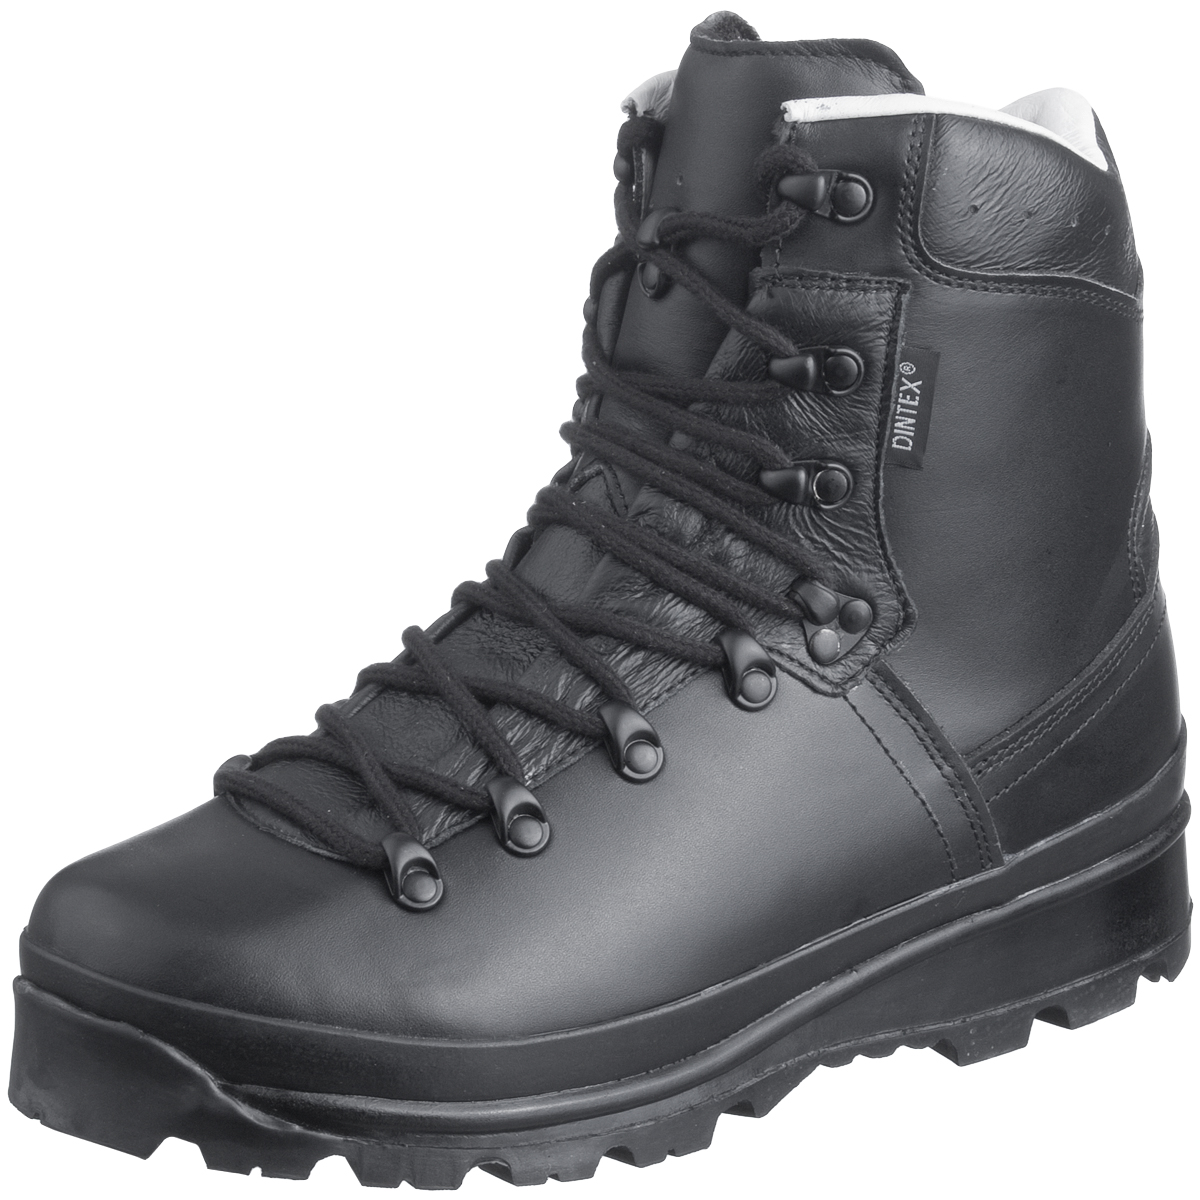 Mil-Tec German Army Mountain Boots Black | Boots ...